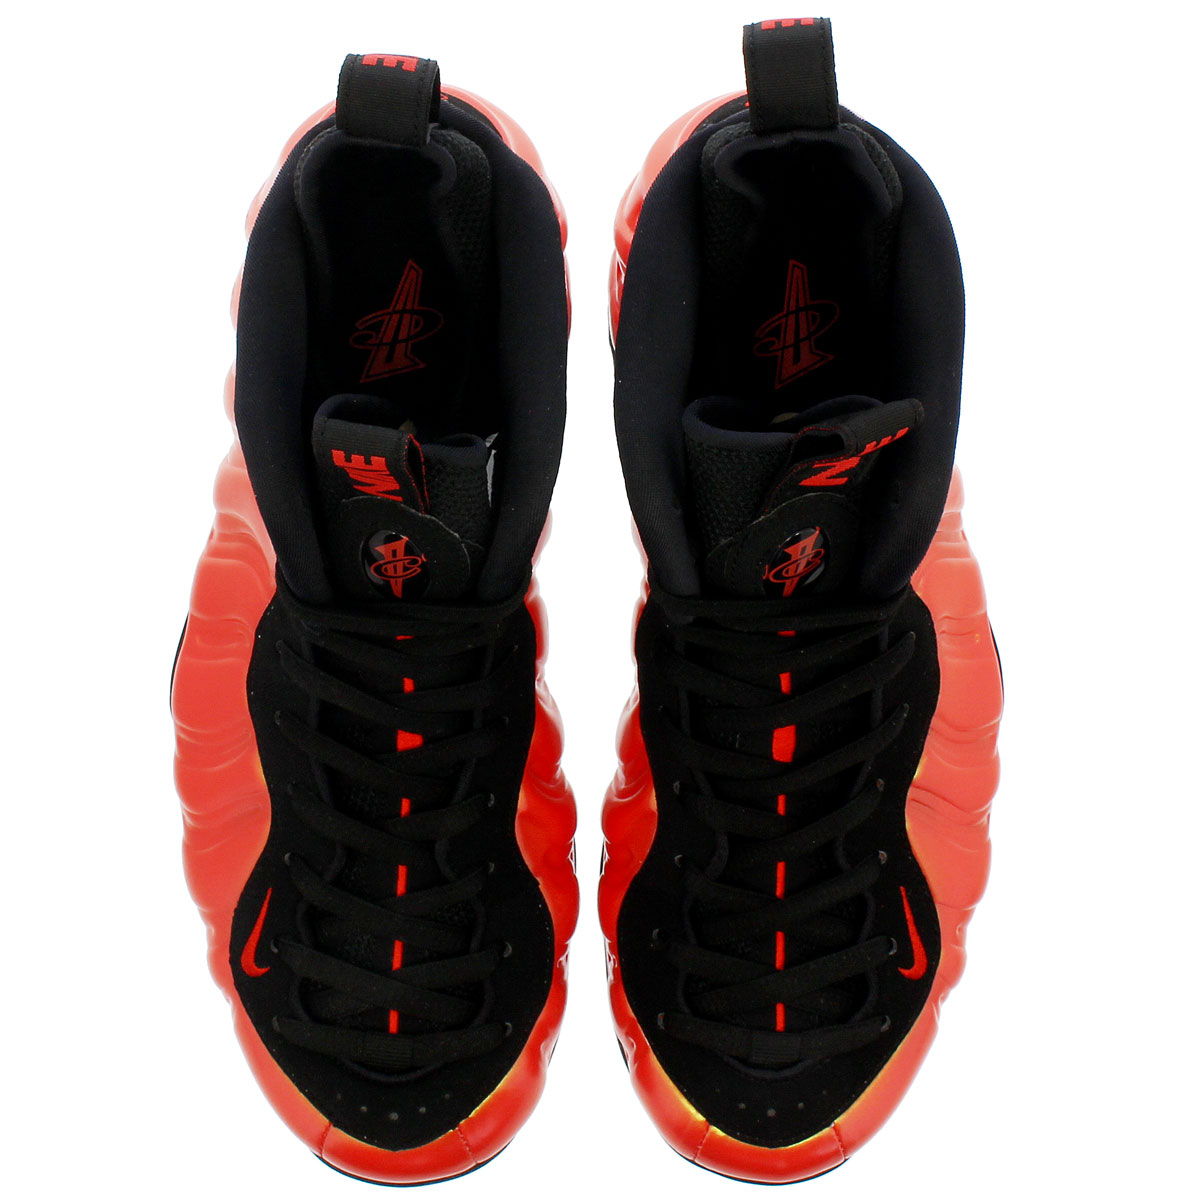 d65ac35b45d24 NIKE AIR FOAMPOSITE ONE ナイキエアフォームポジットワン HABANERO RED BLACK 314